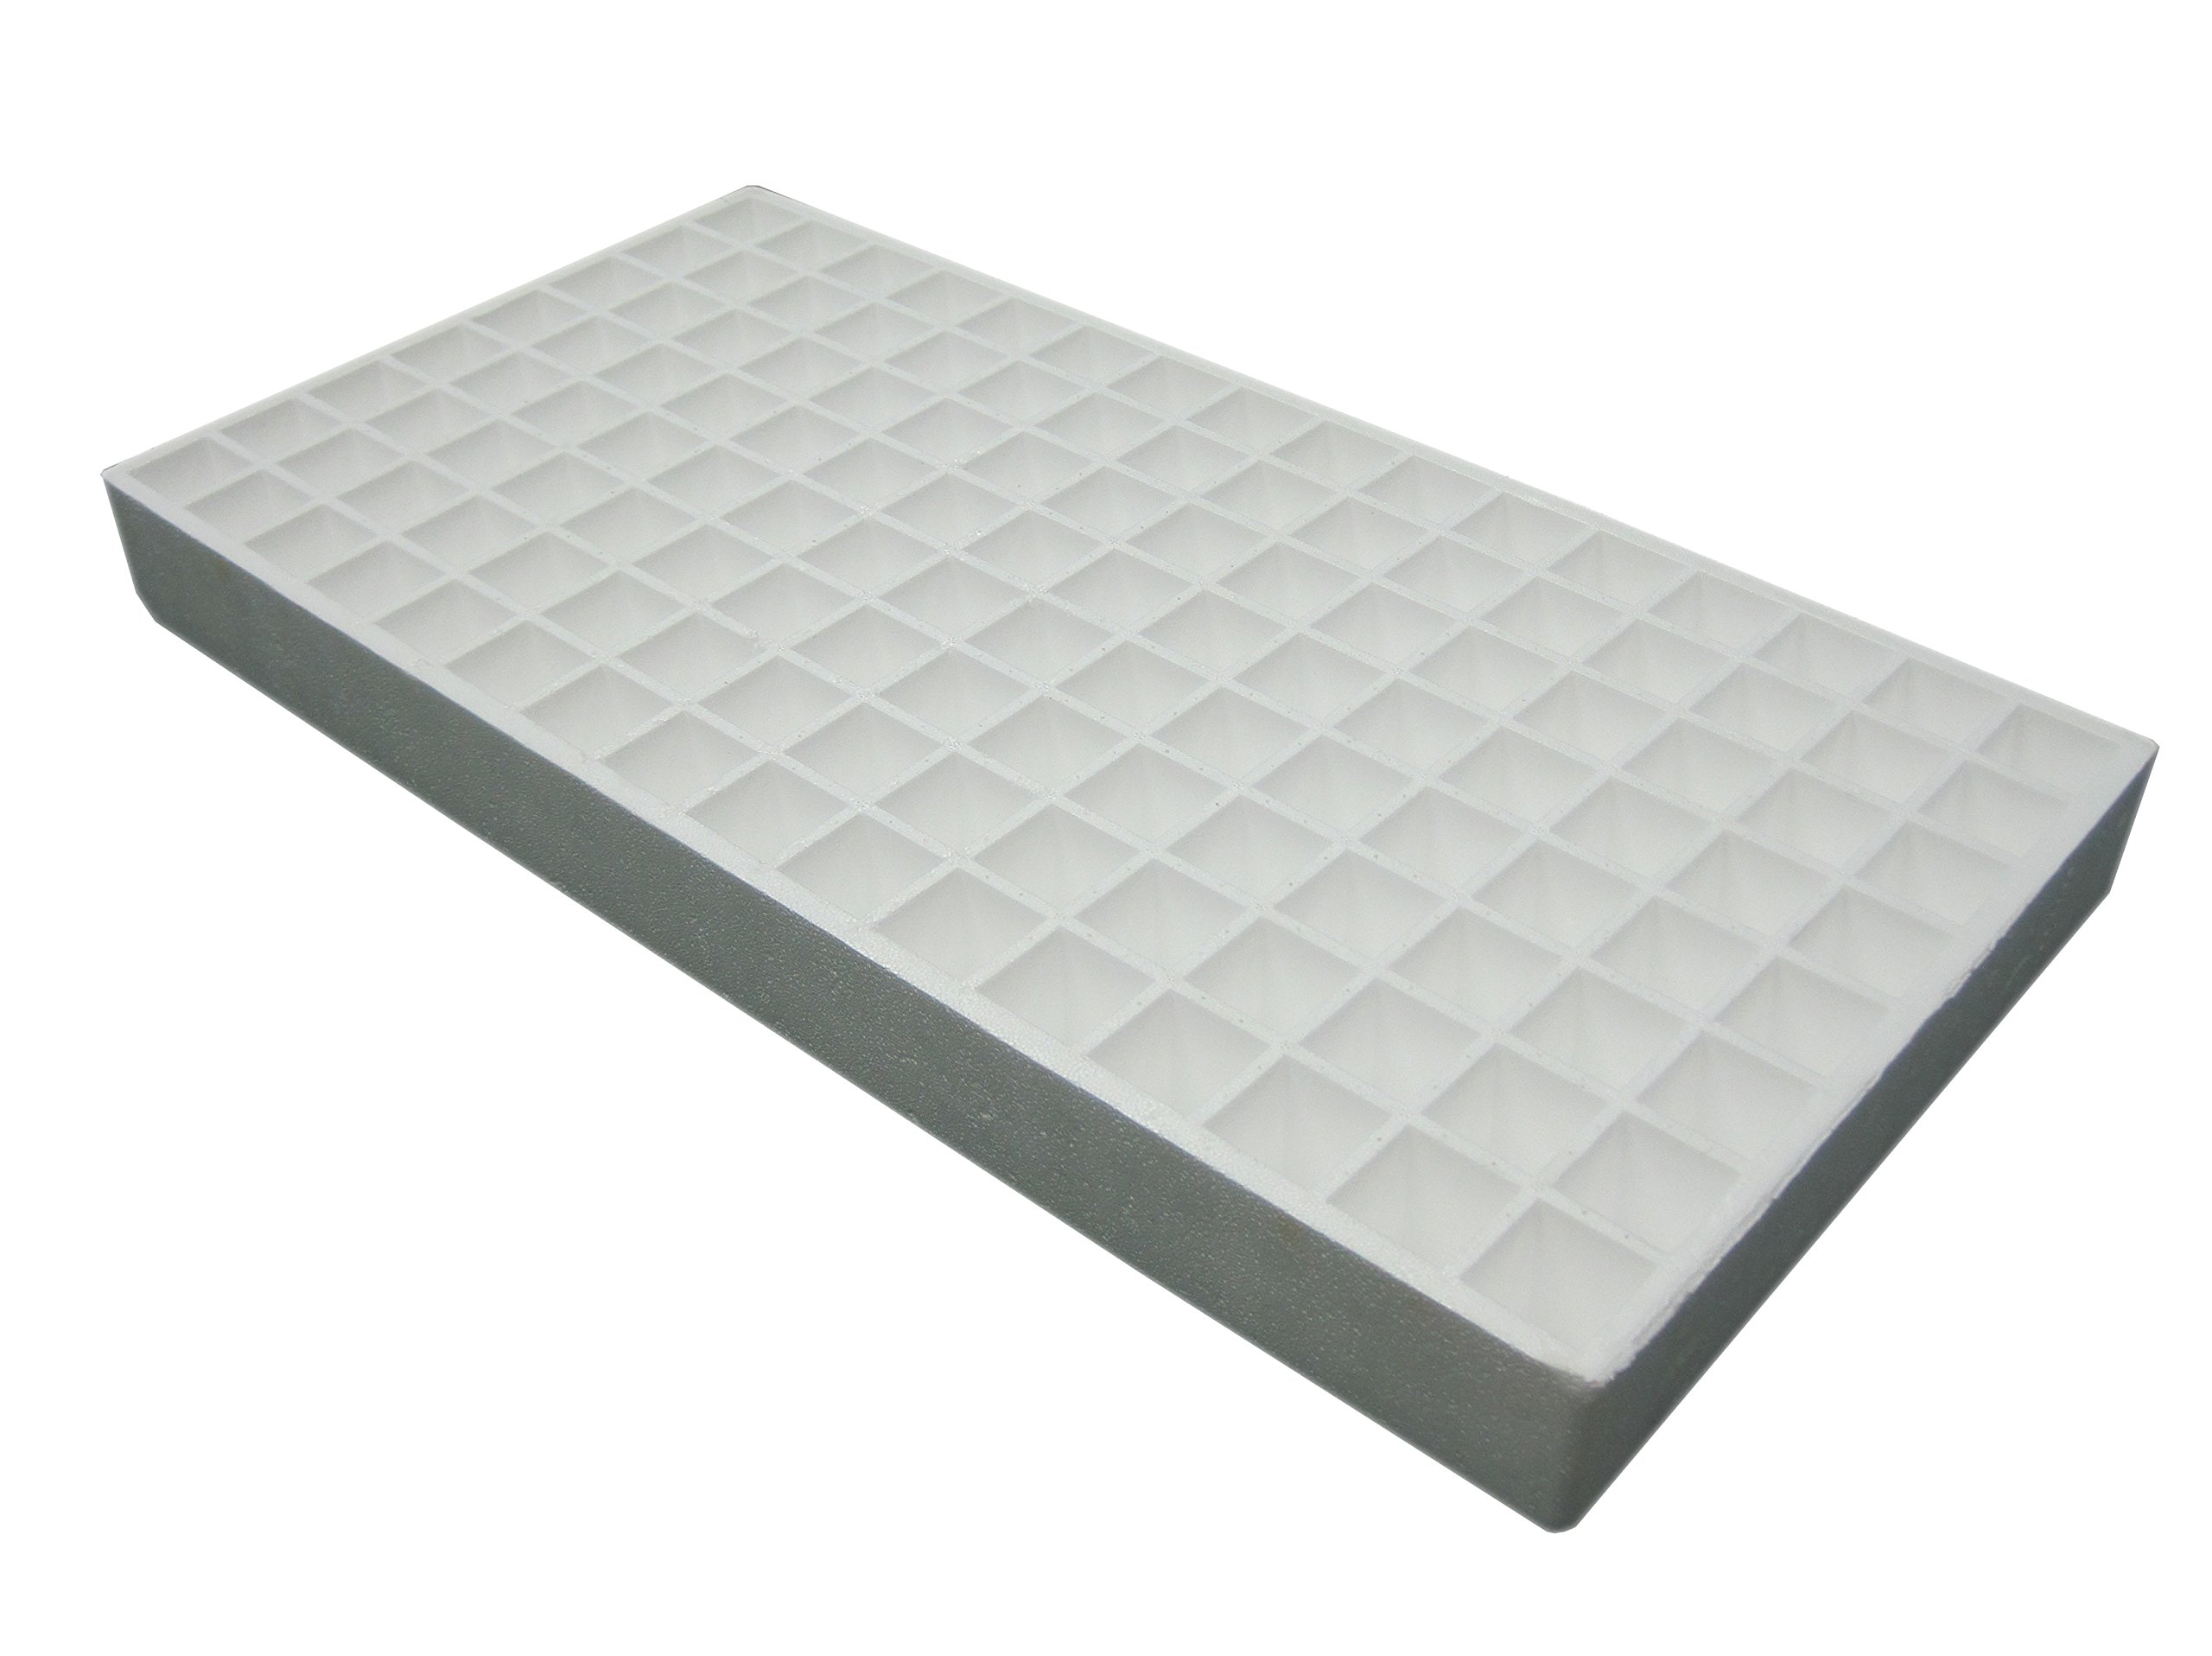 RSI Hydroponic Seed Trays 128 Plugs, 2 Pack